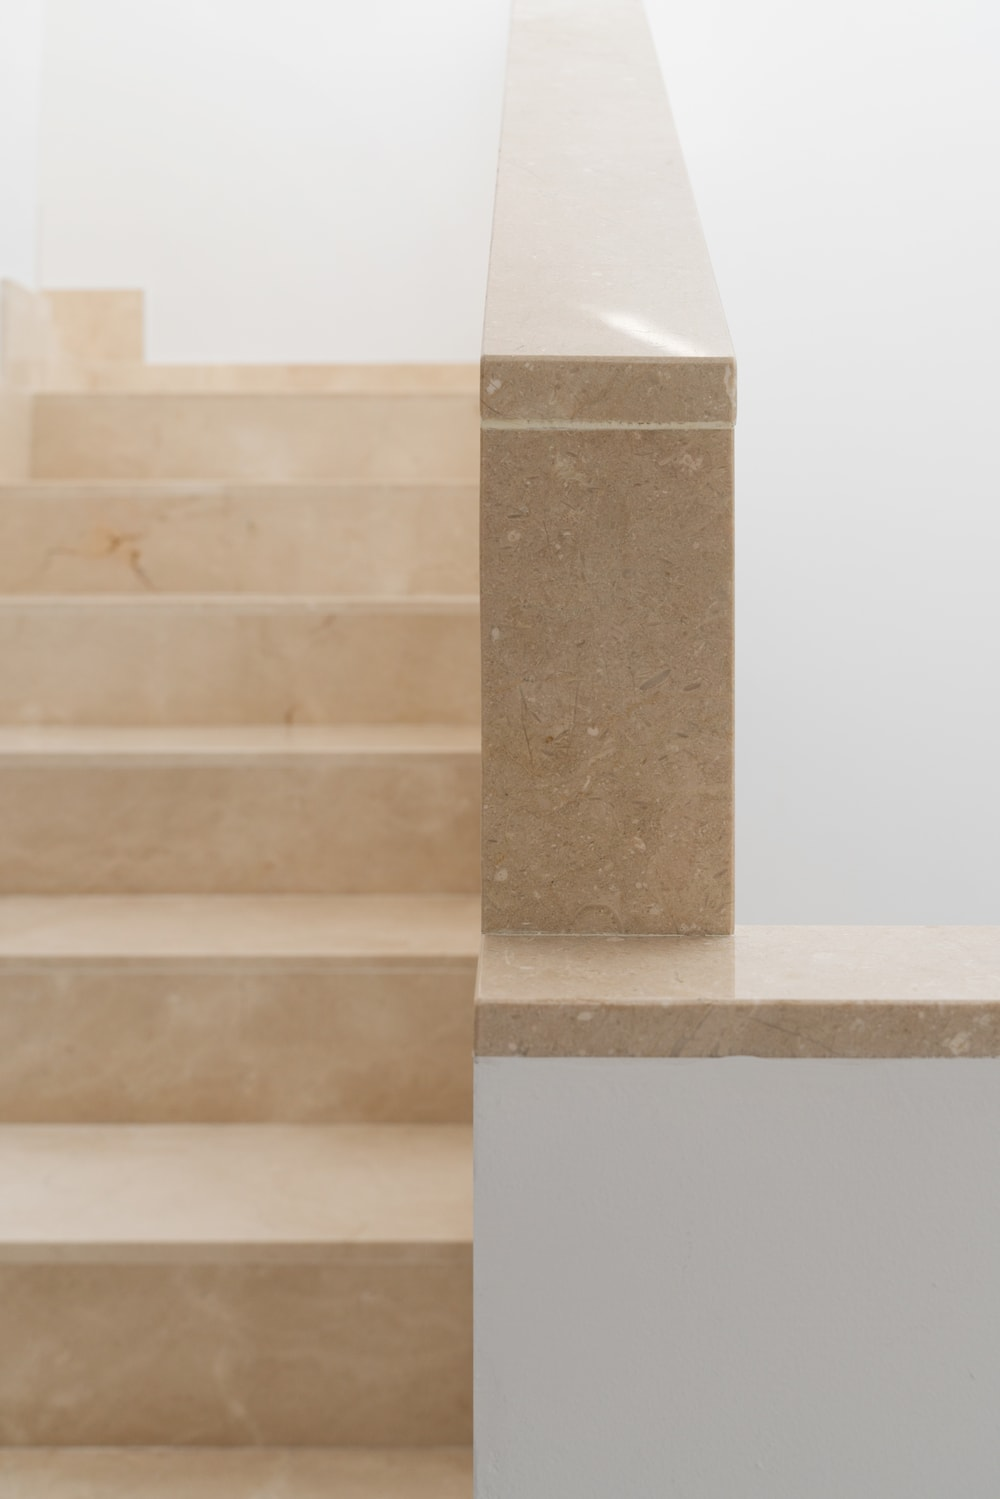 This is a close look at the beige marble steps of the staircase. It's material is also used on the banisters bordering the sides of the stairs to complement the white walls.